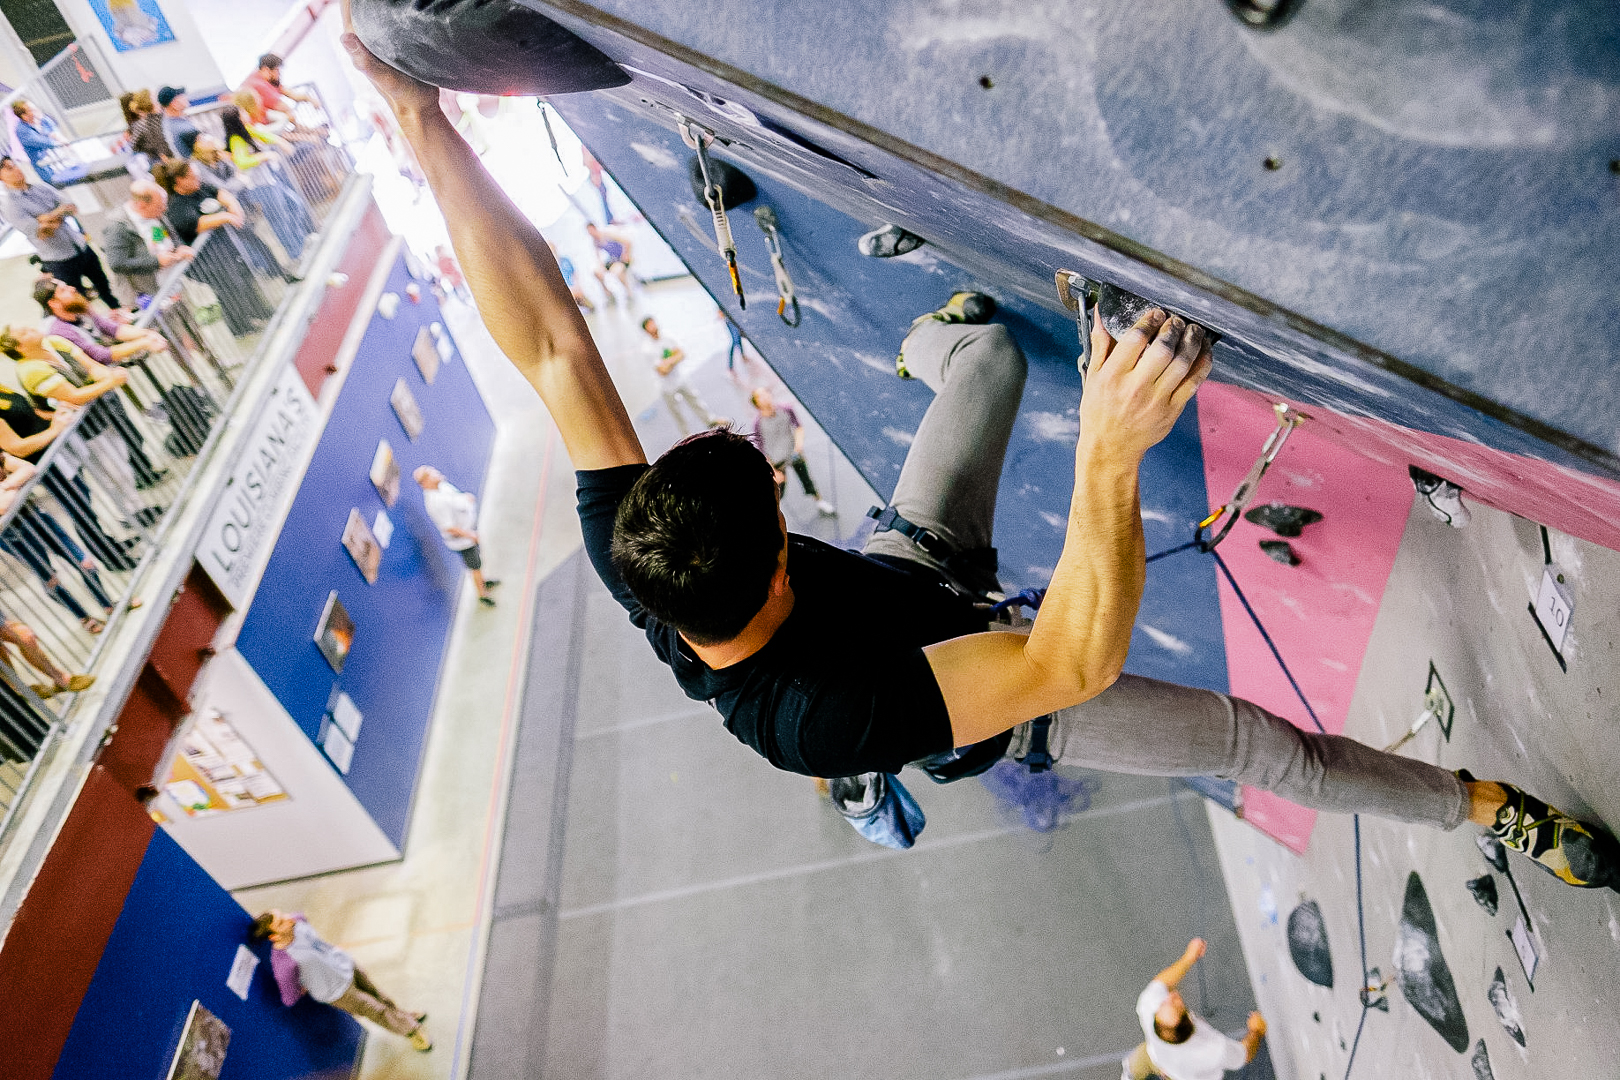 Lead Wall - Step Up your game. The lead wall is the main feature of our Grand Island and for advanced climbers only. Not Up for it yet? Grab a spot on the mezzanine viewing area and be inspired watching climbers tackle these routes.